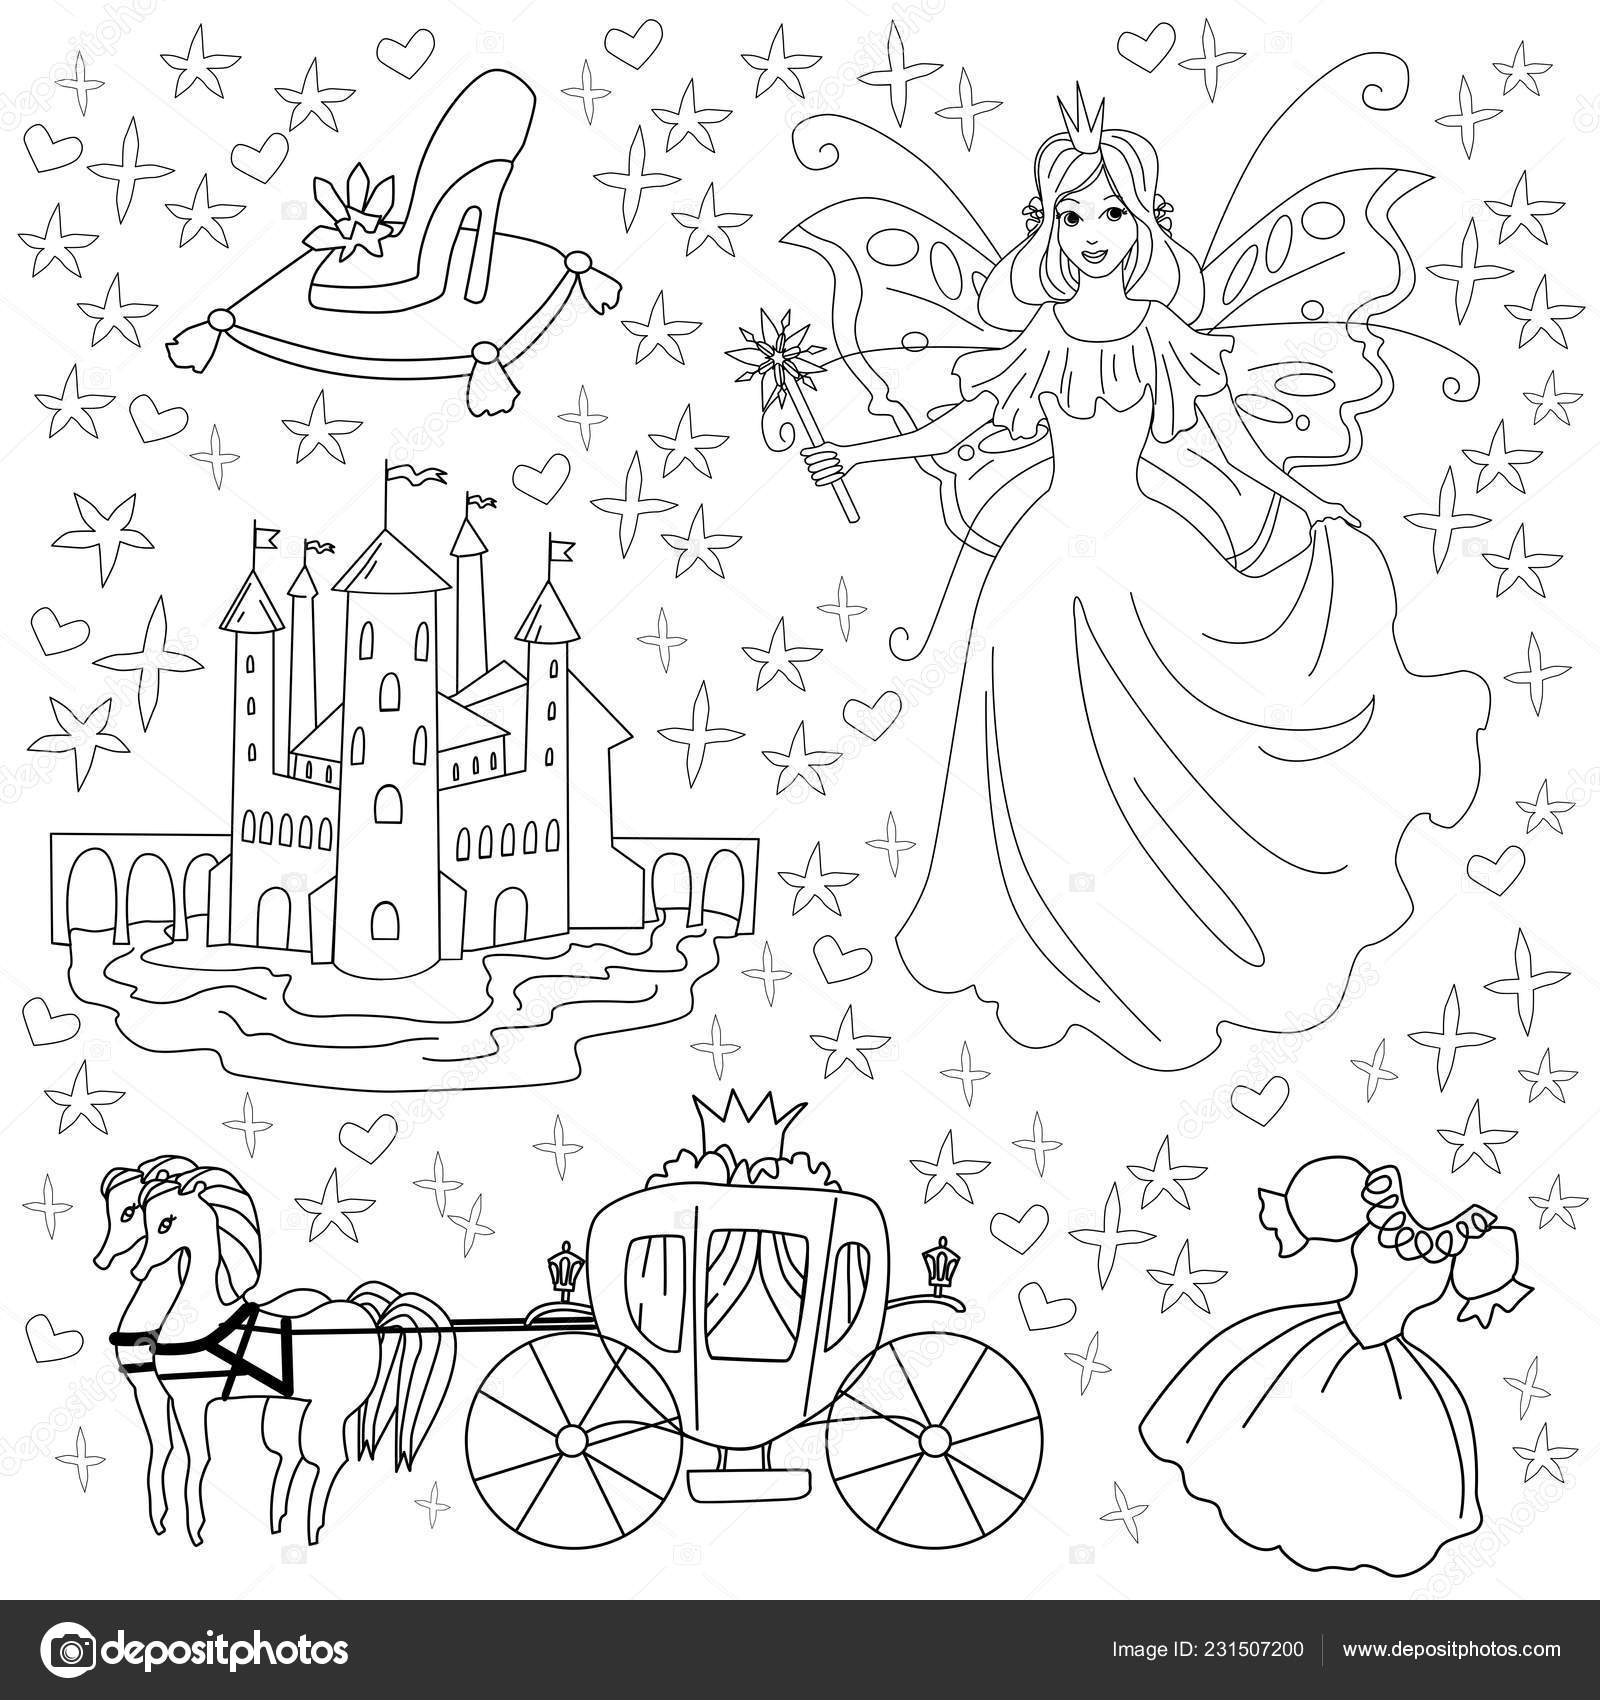 Fairy tale coloring page for kids. Vector illustration of ...